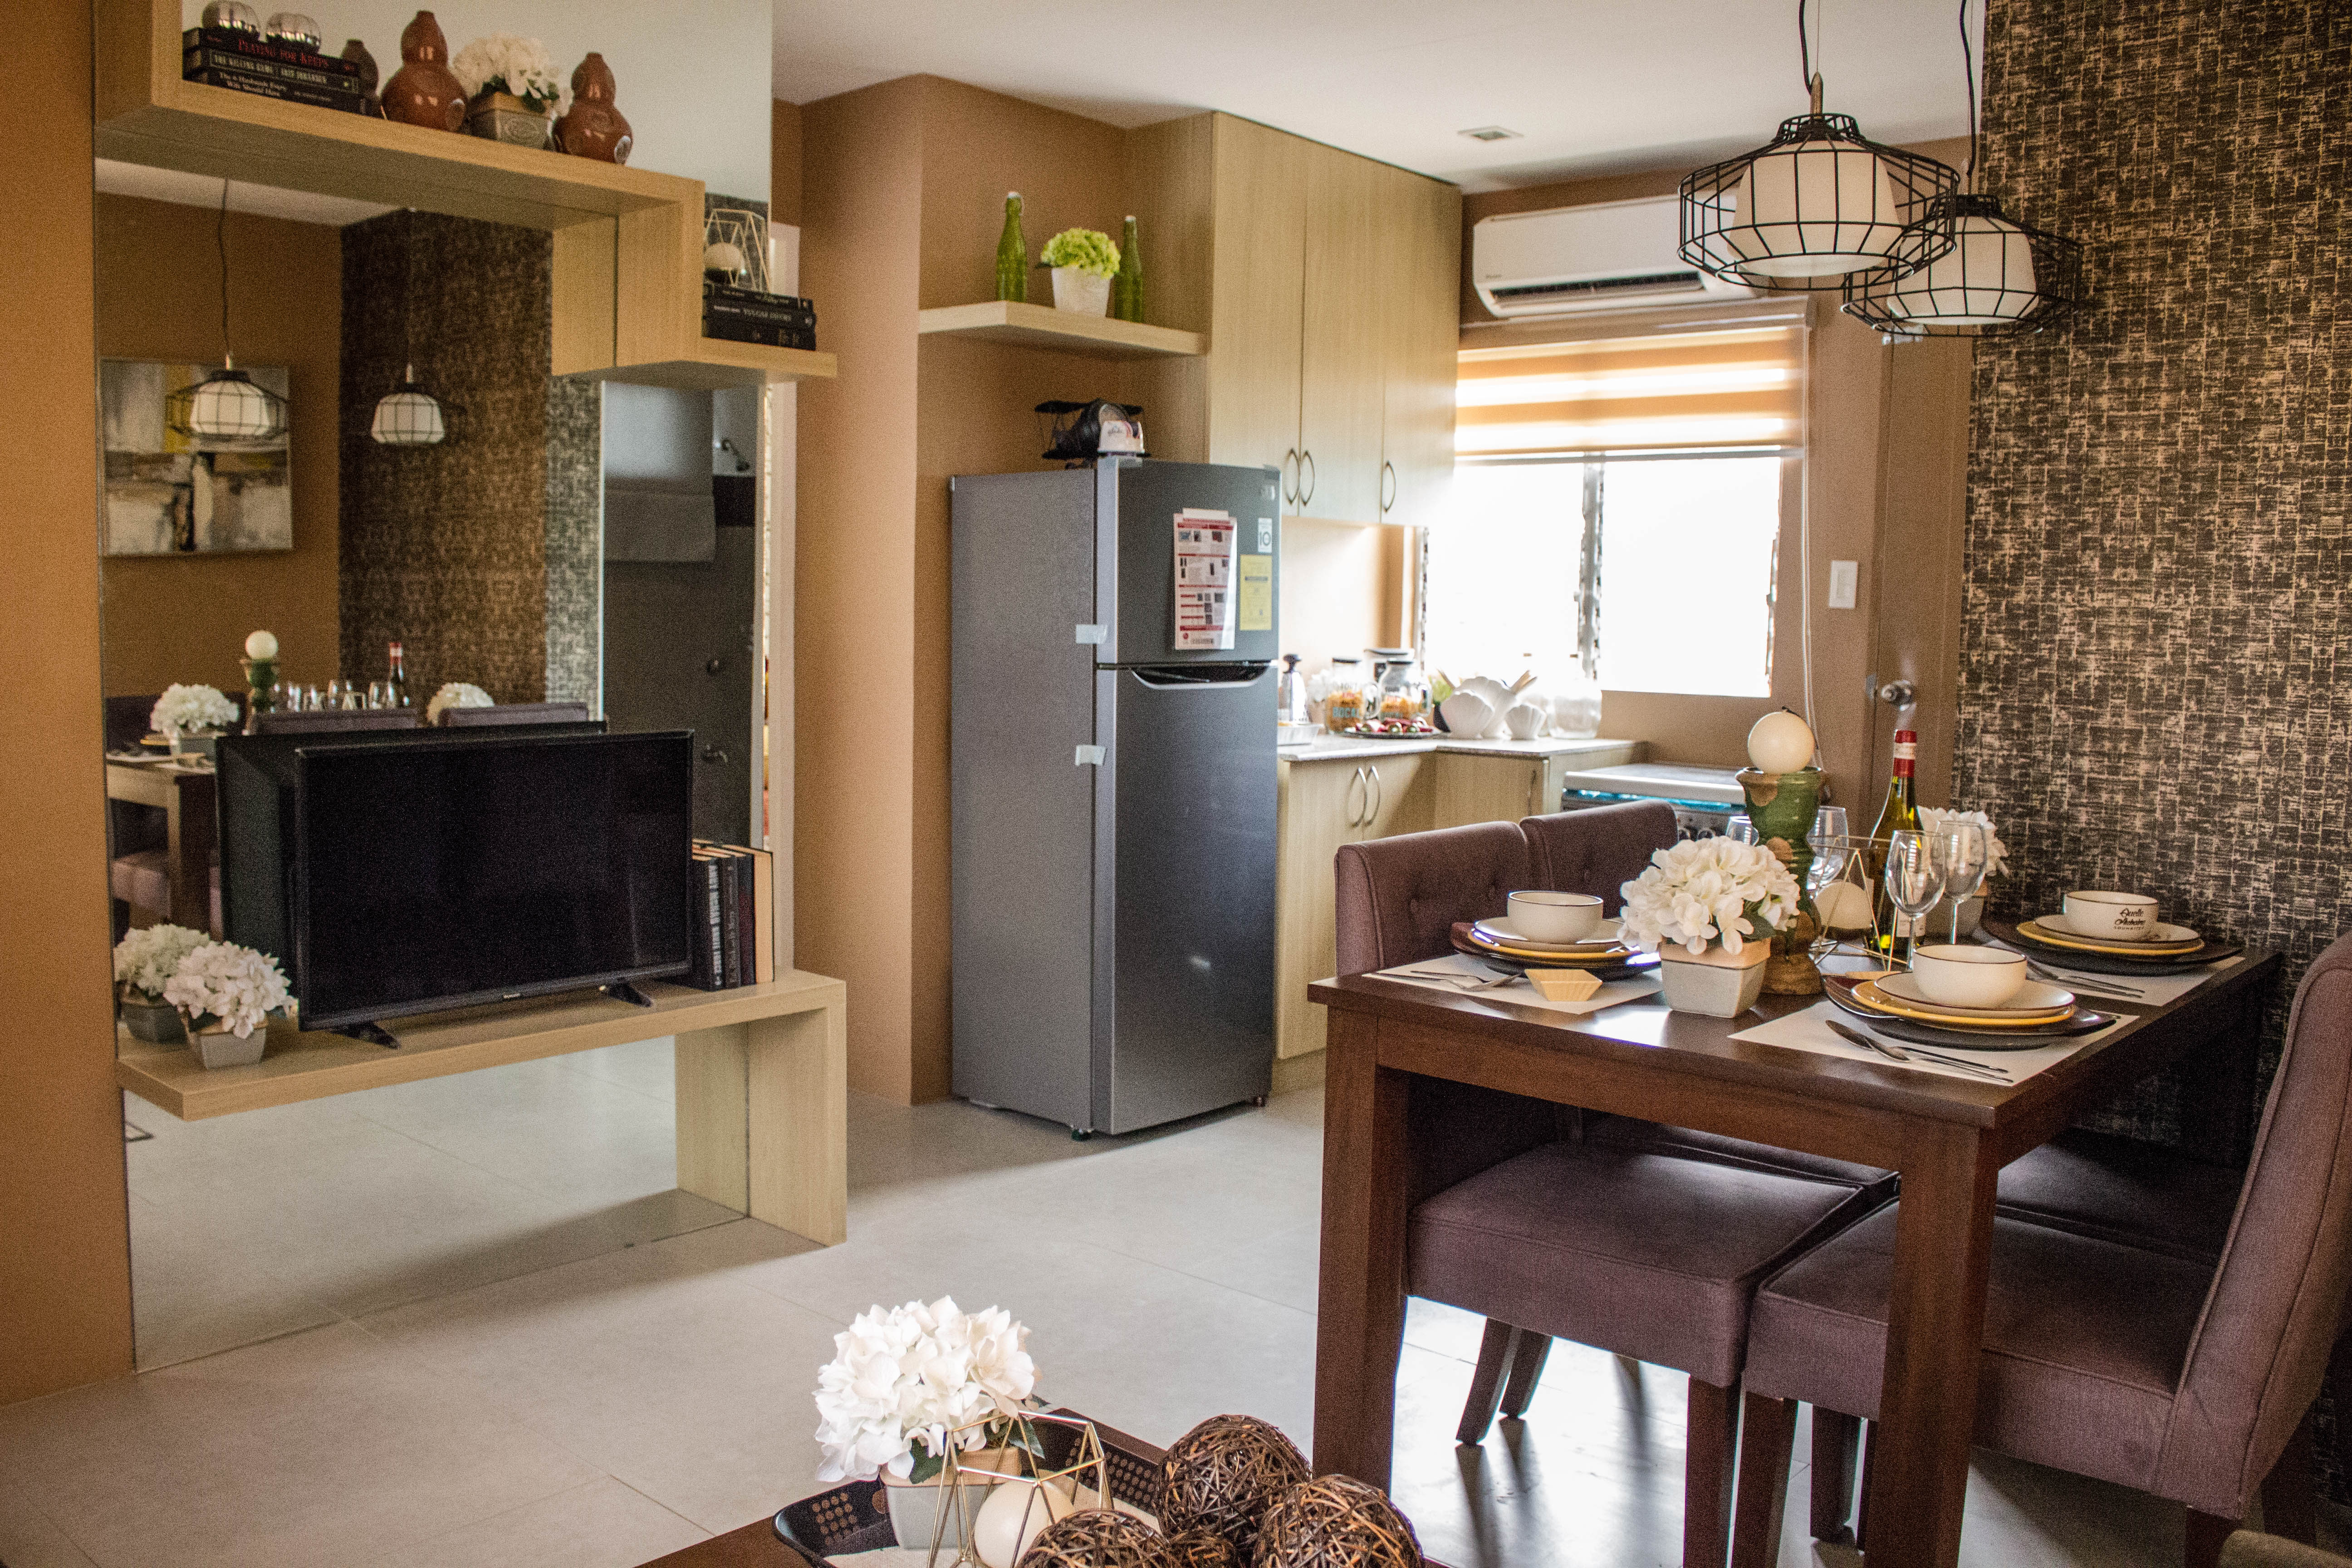 BRIA Homes Expands its Portfolio of Product Lines to Provide Homes  to More Filipinos